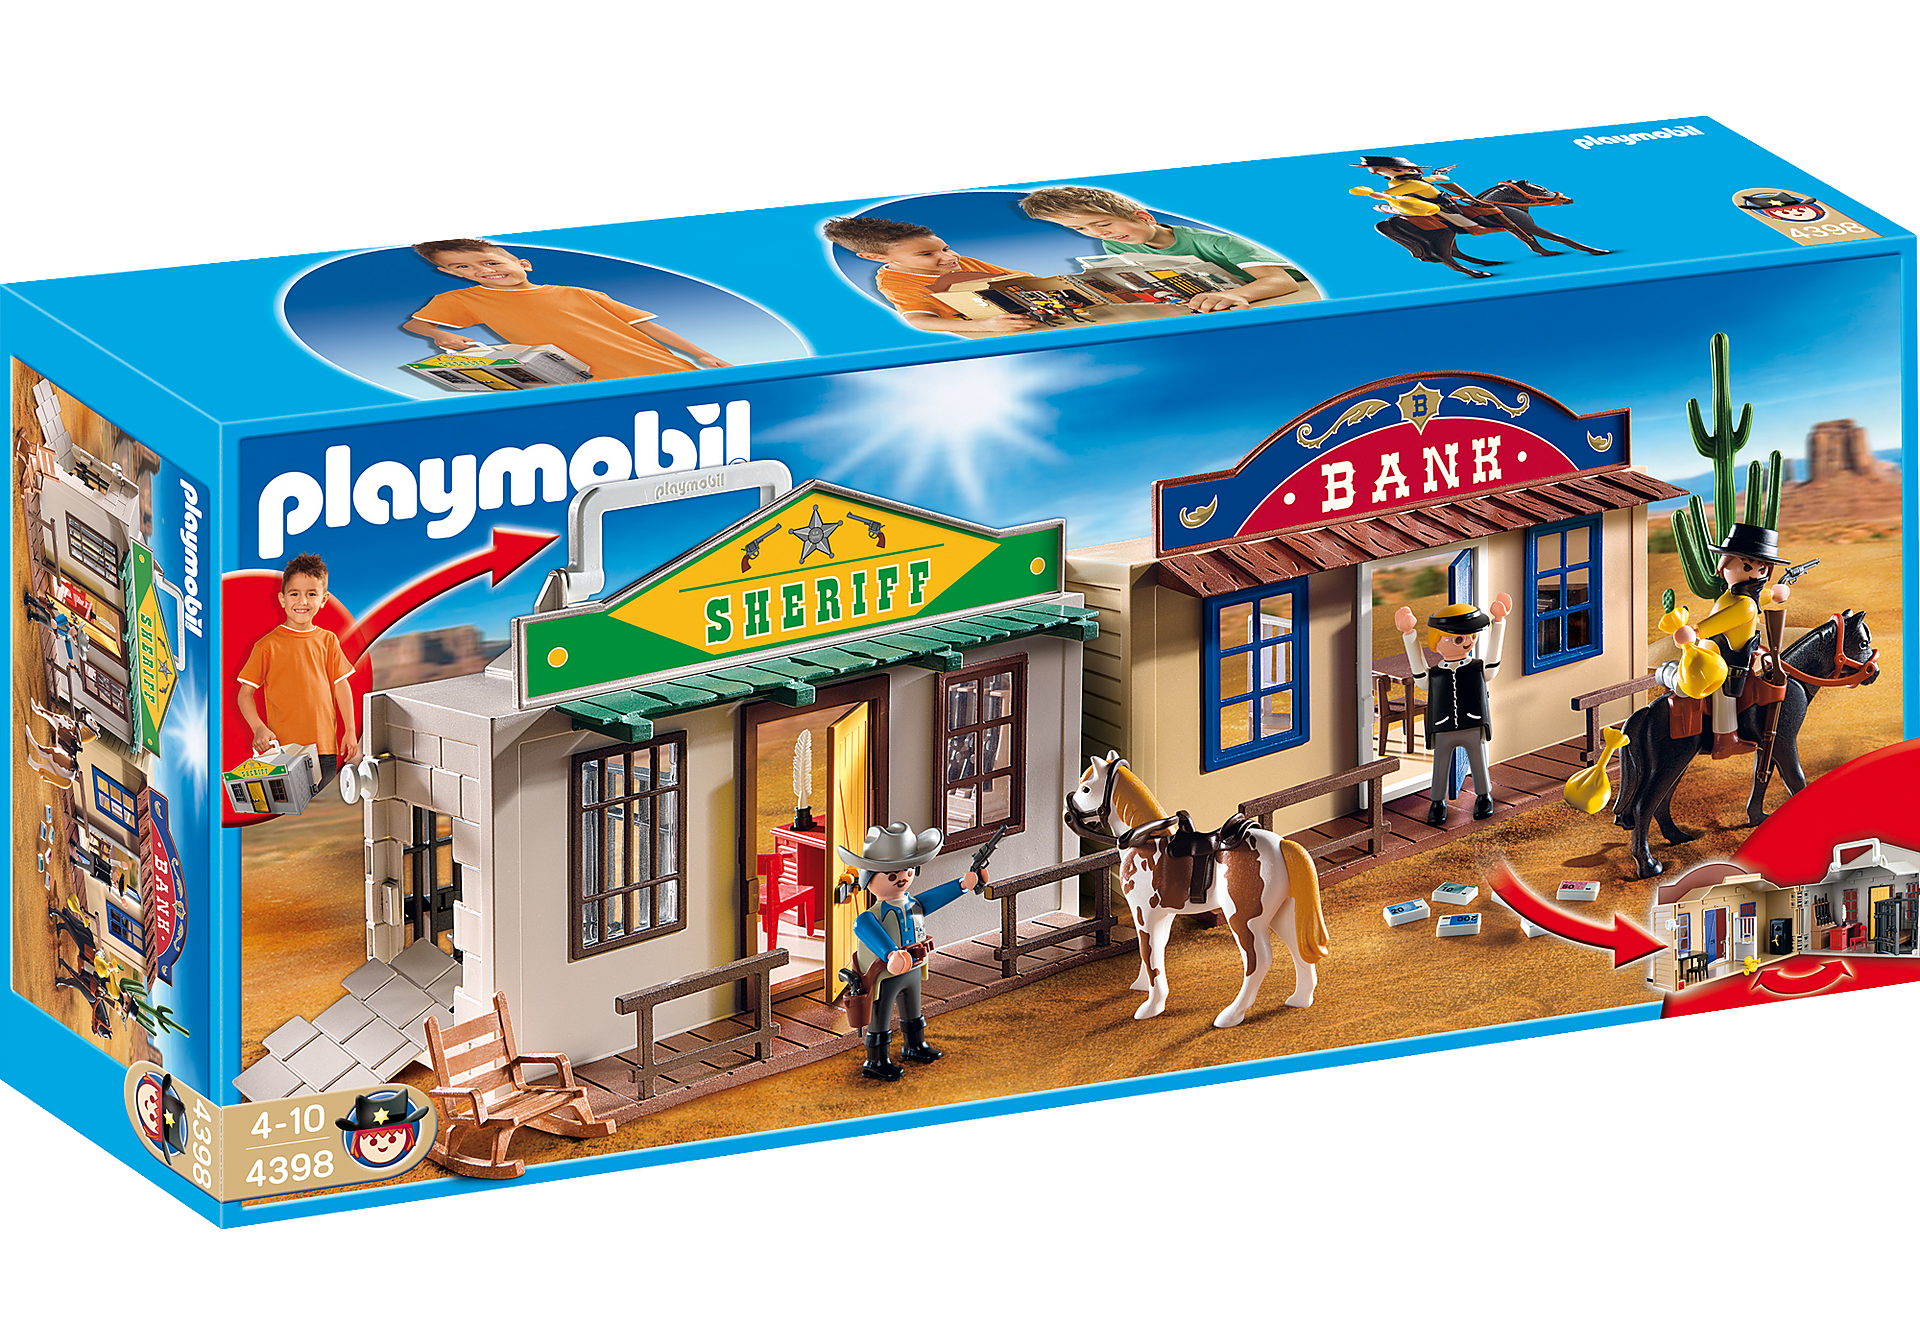 http://media.playmobil.com/i/playmobil/4398_product_box_front/Mitnehm-WesternCity